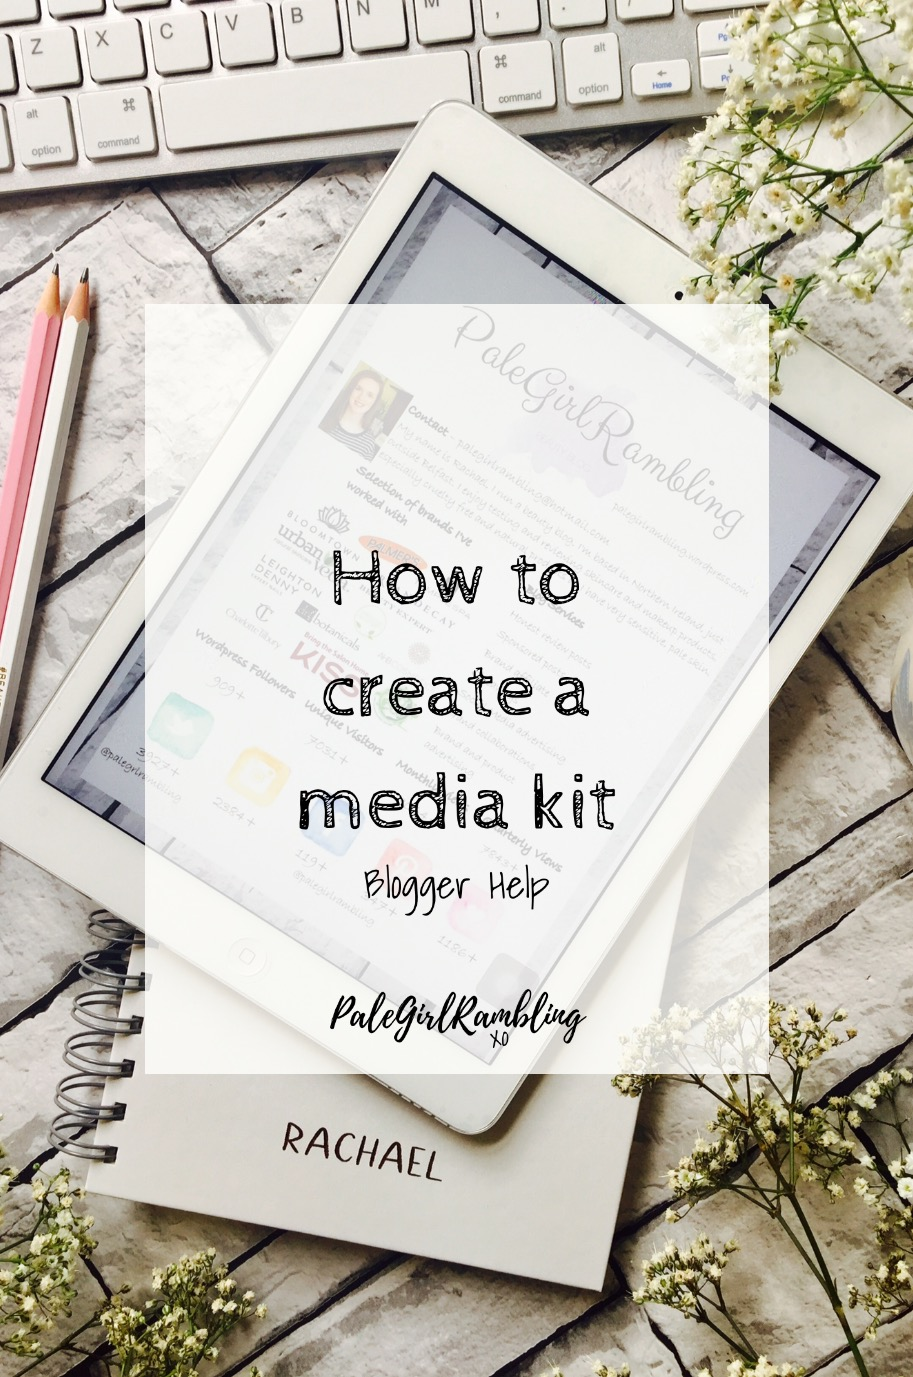 How to make a media kit approach brands Blogger Collaboration media kits